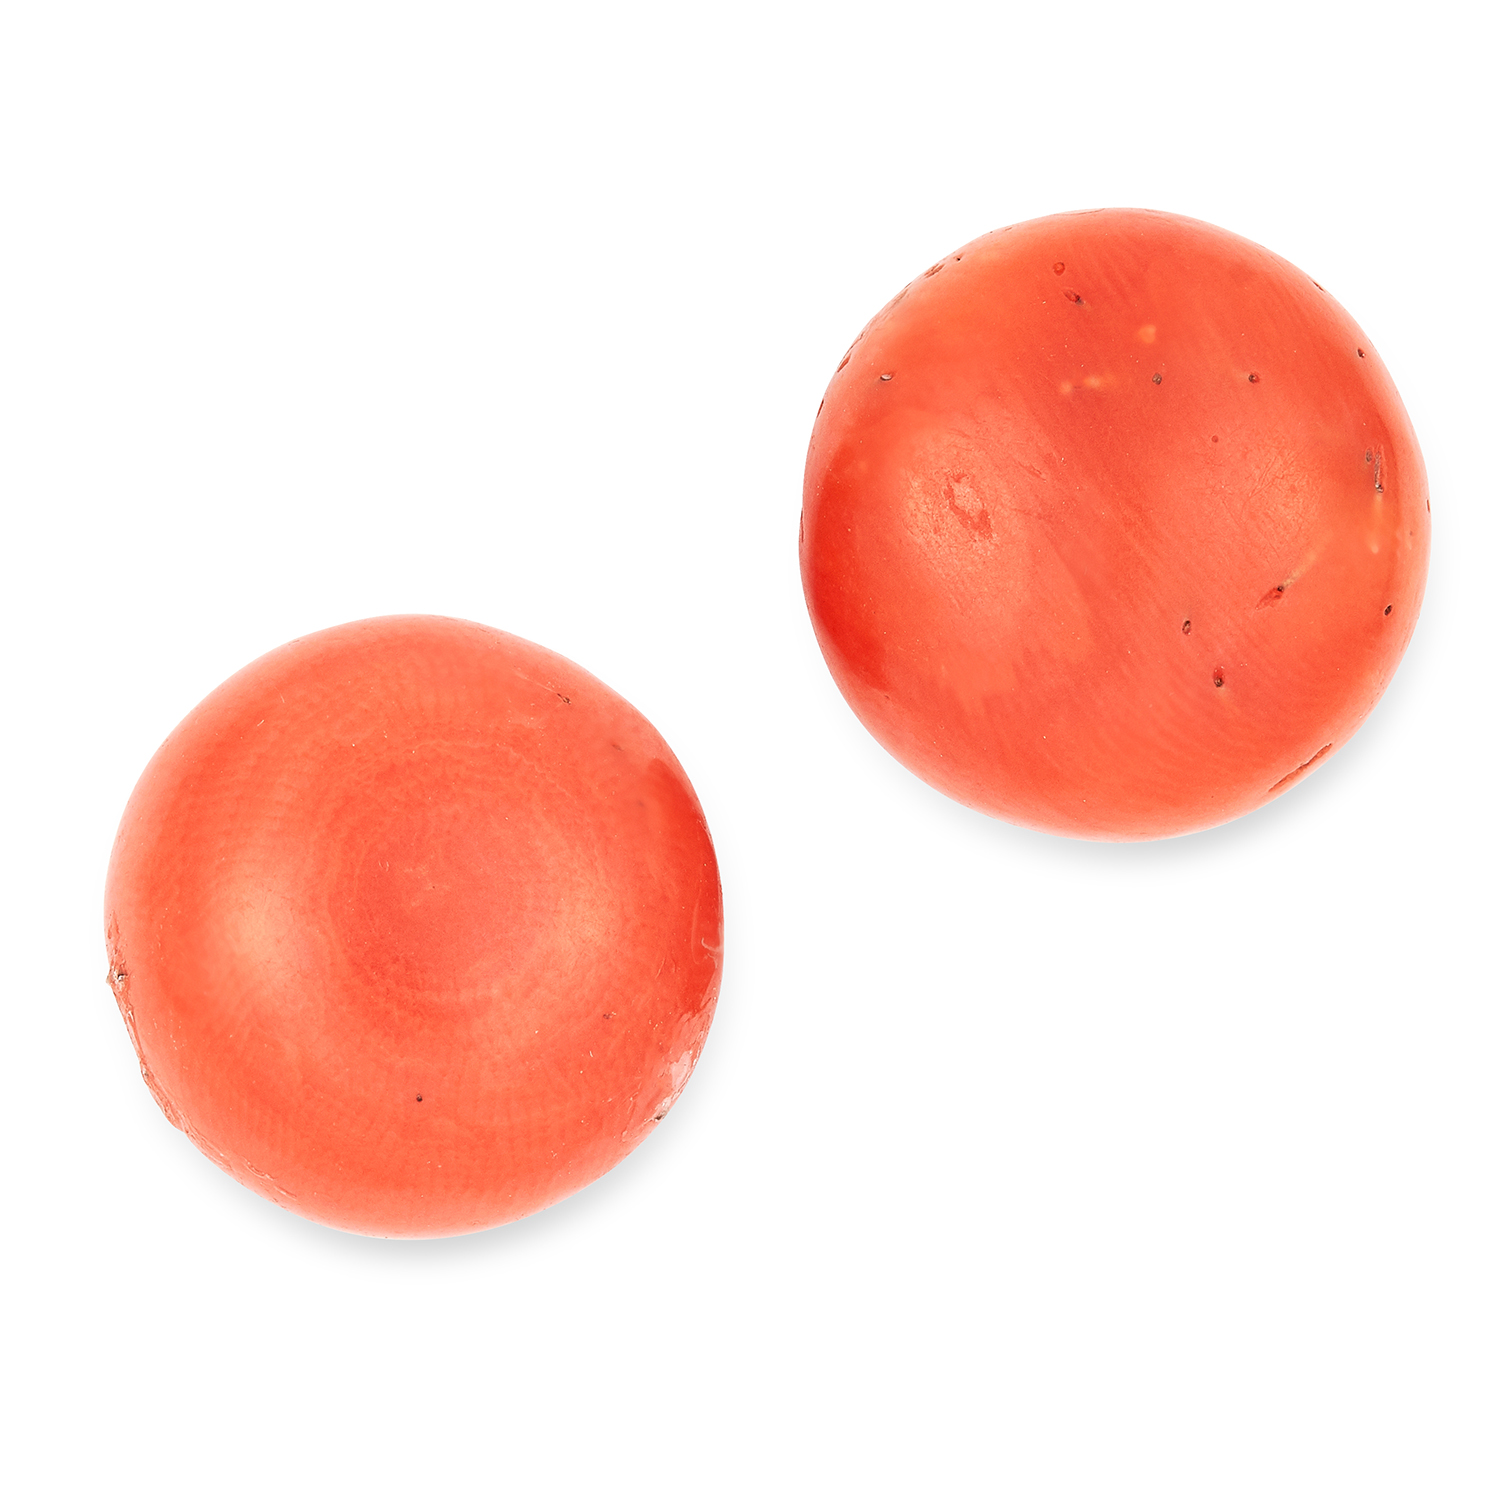 LARGE ANTIQUE CORAL BEAD STUD EARRINGS set with circular coral beads, 1.4cm, 4.6g.